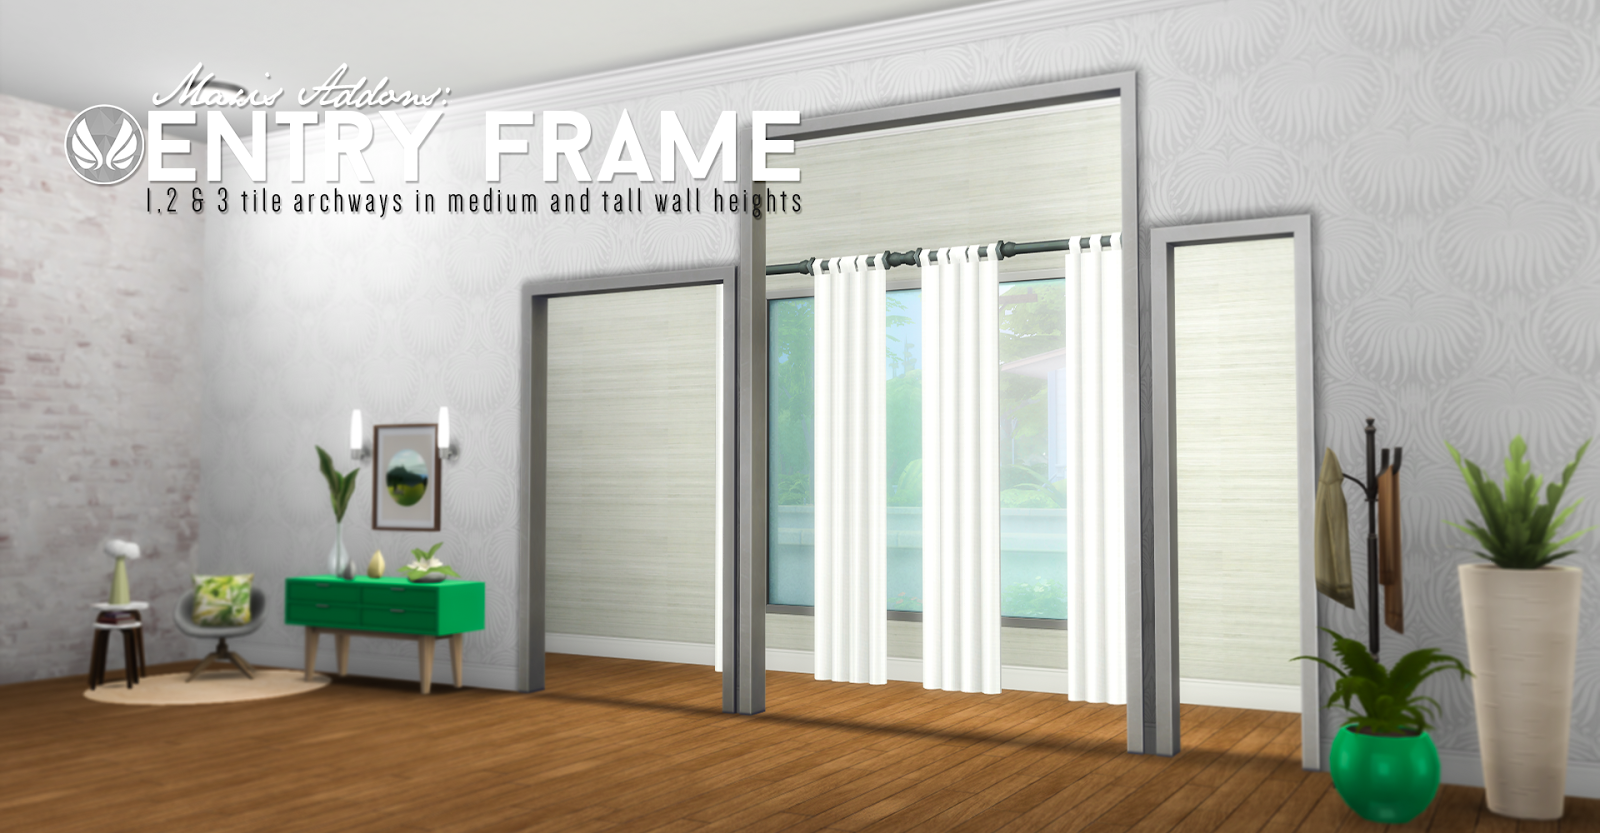 Simsational Designs: UPDATED - Entry Frame Addons